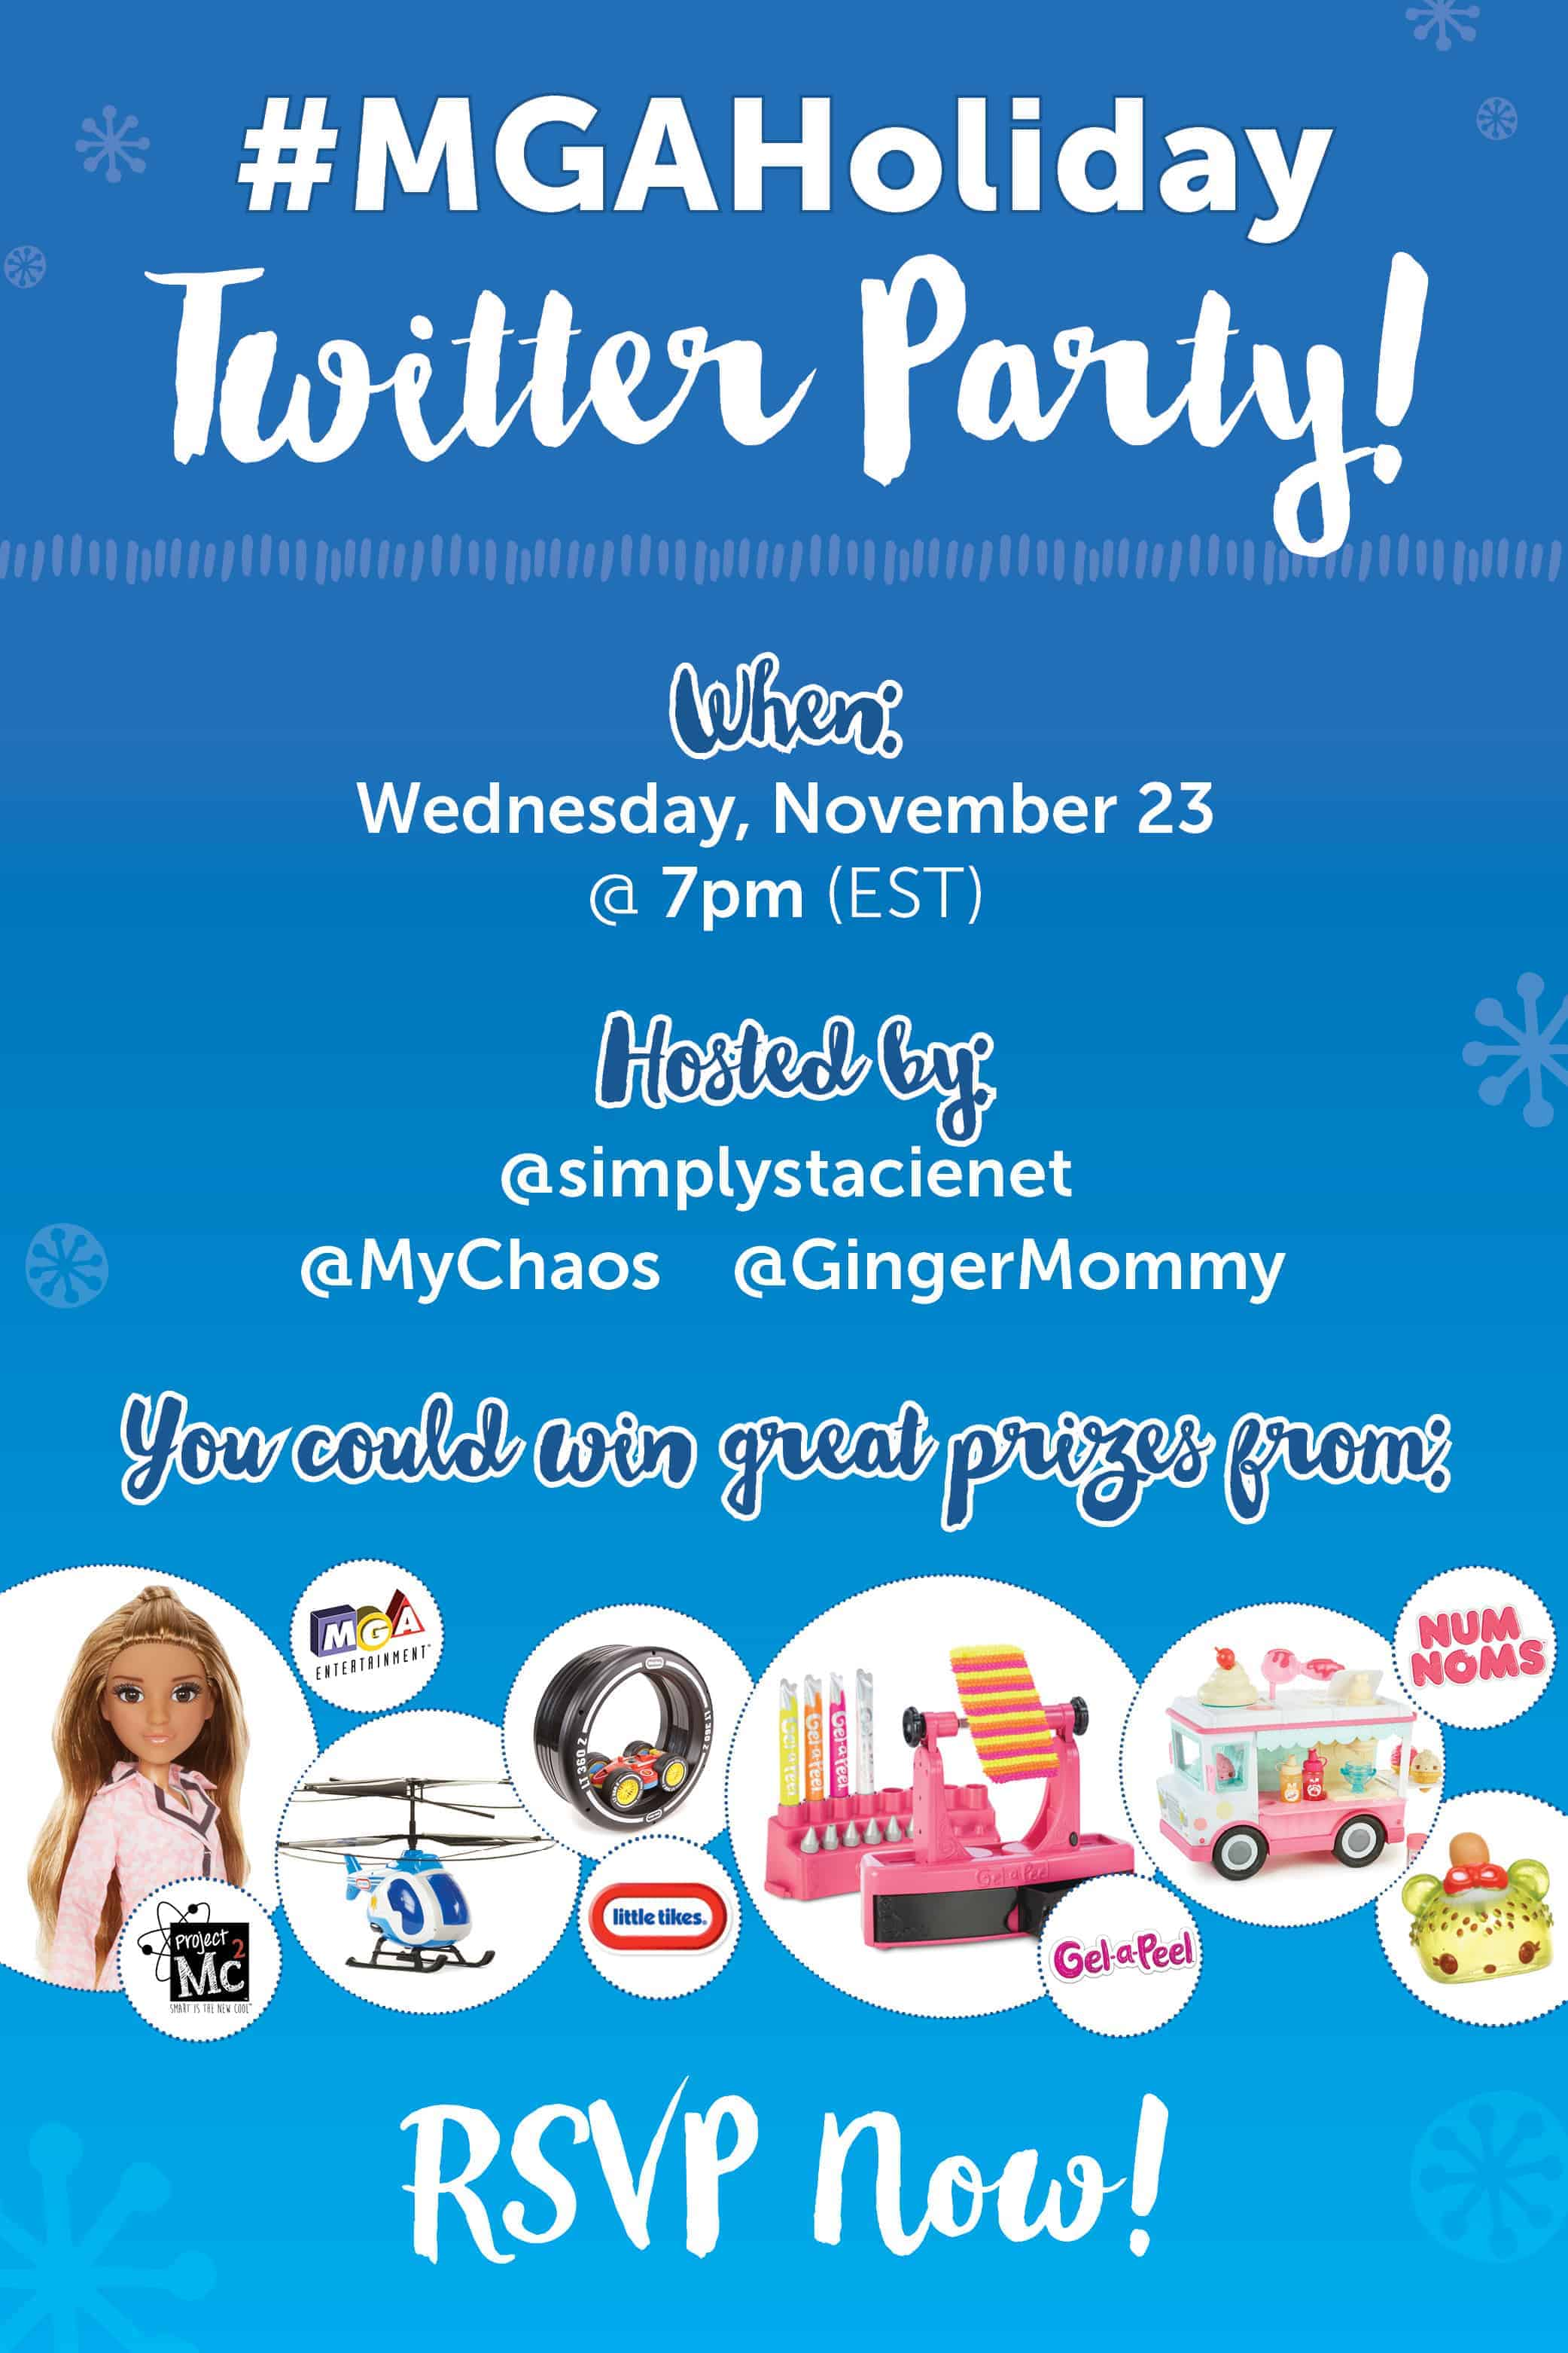 MGAHoliday Twitter Party